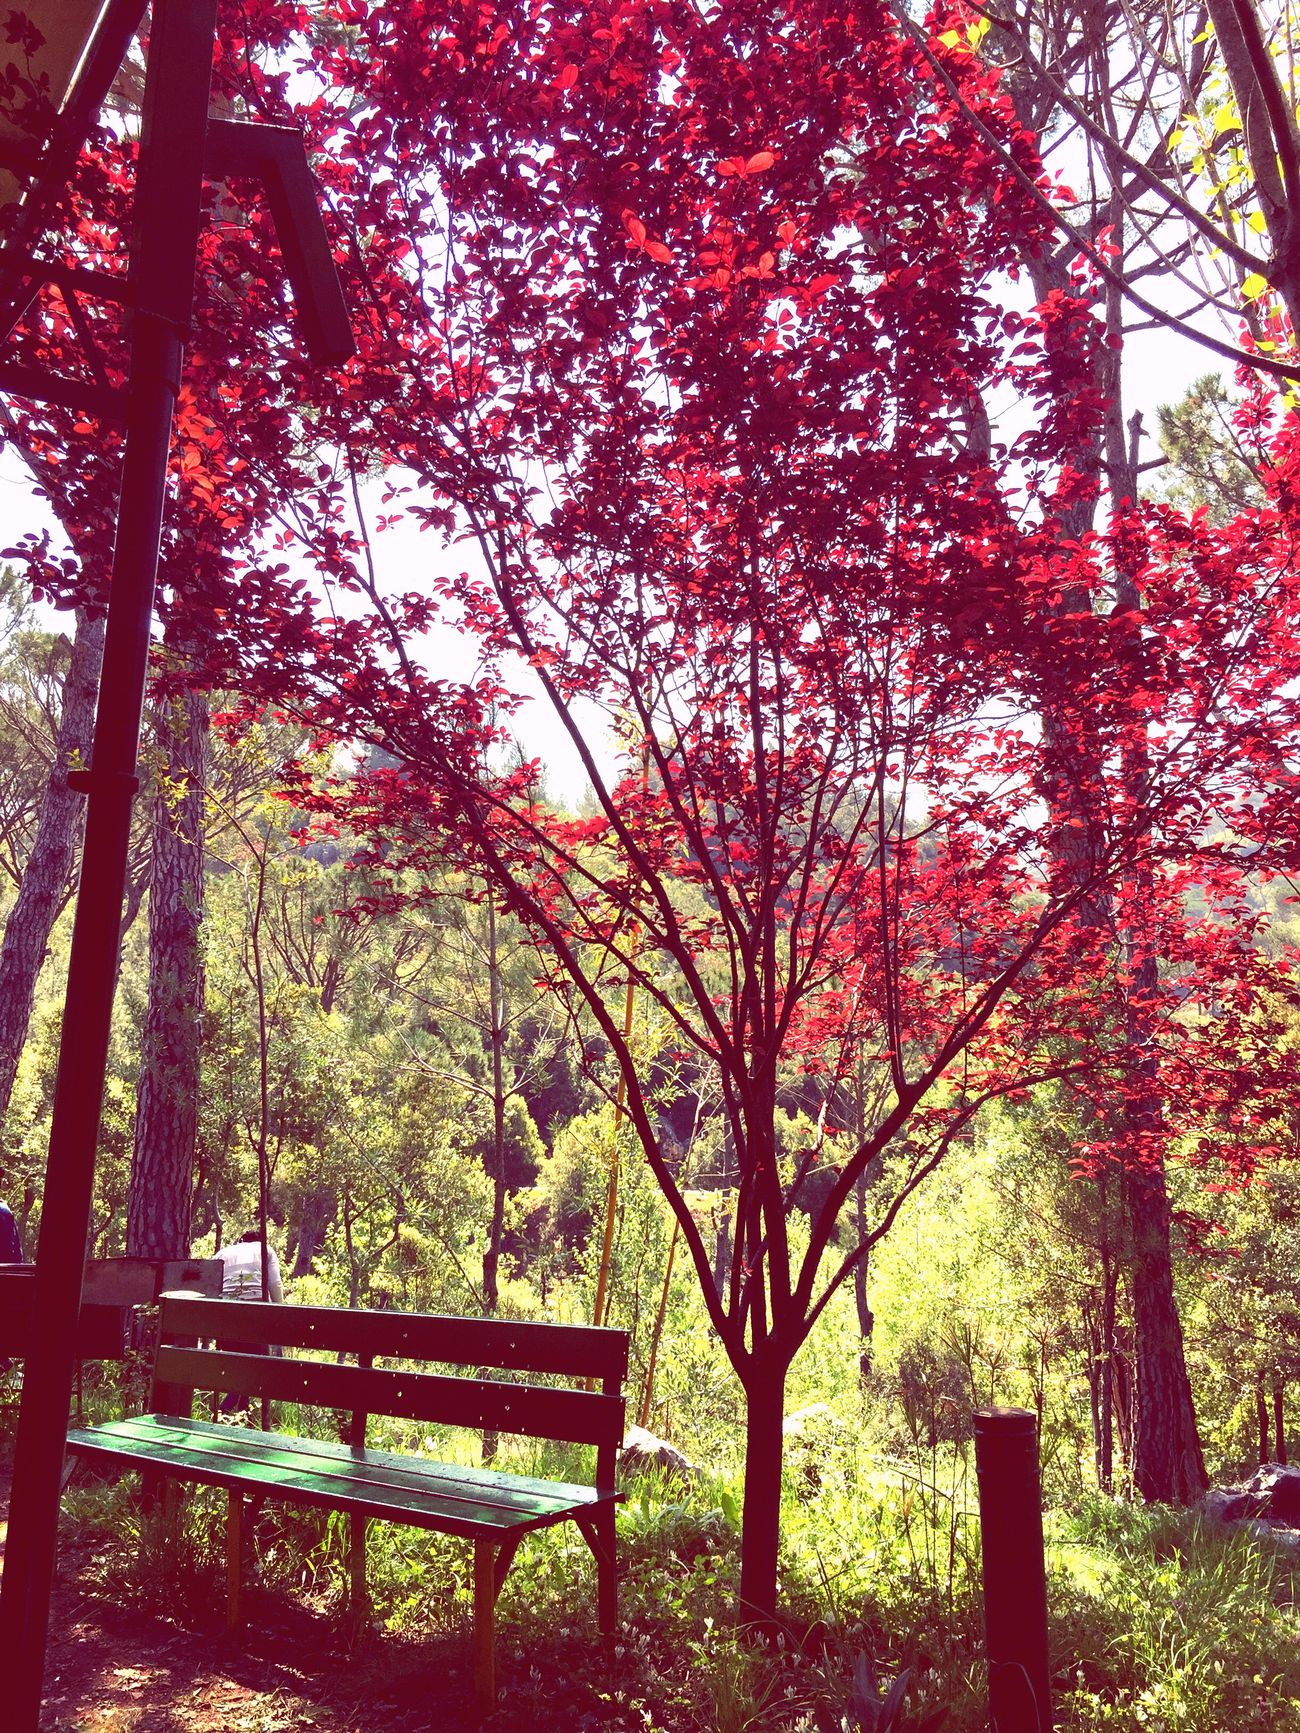 Stunning view Beauty In Nature Beautiful Colors Of Nature Green And Red Leaves Mobile Photography The Place I'm Now